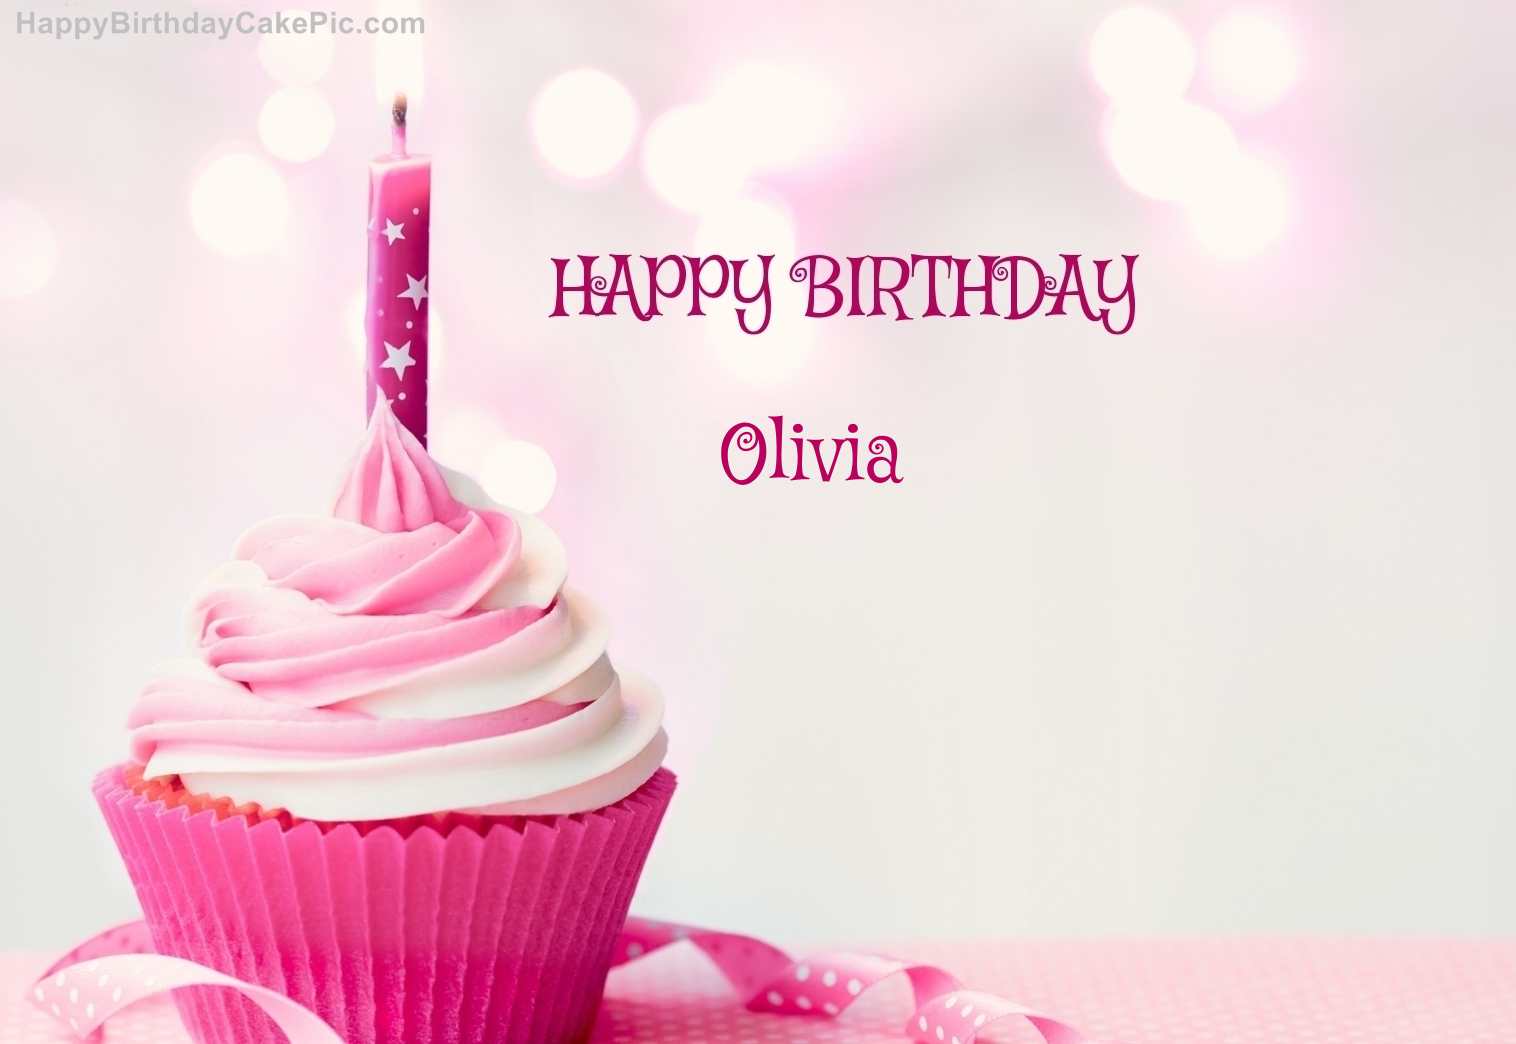 Happy Birthday Cupcake Candle Pink Cake For Olivia